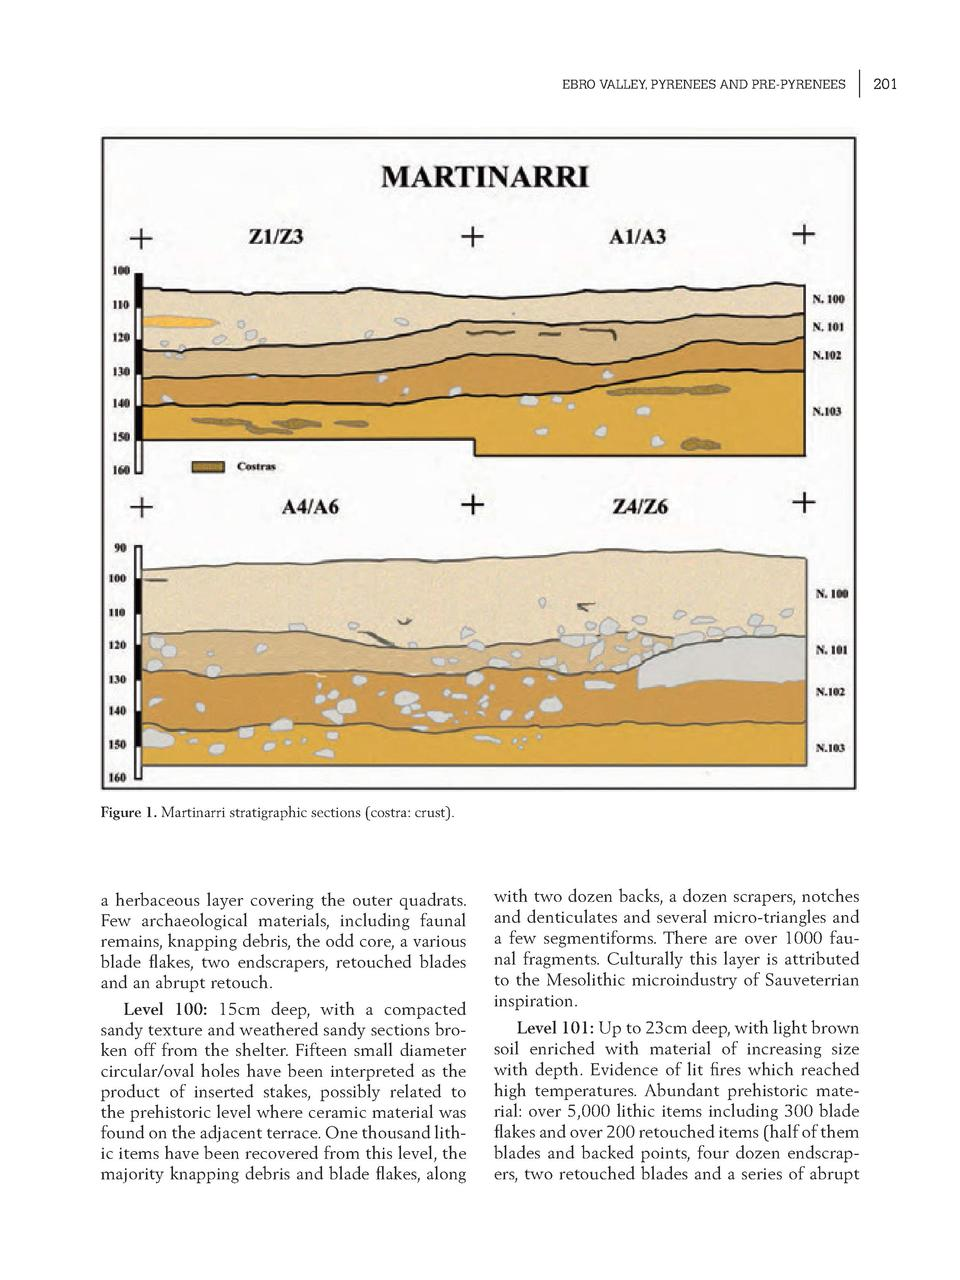 EBRO VALLEY, PYRENEES AND PRE-PYRENEES  Figure 1. Martinarri stratigraphic sections  costra  crust .  a herbaceous layer c...